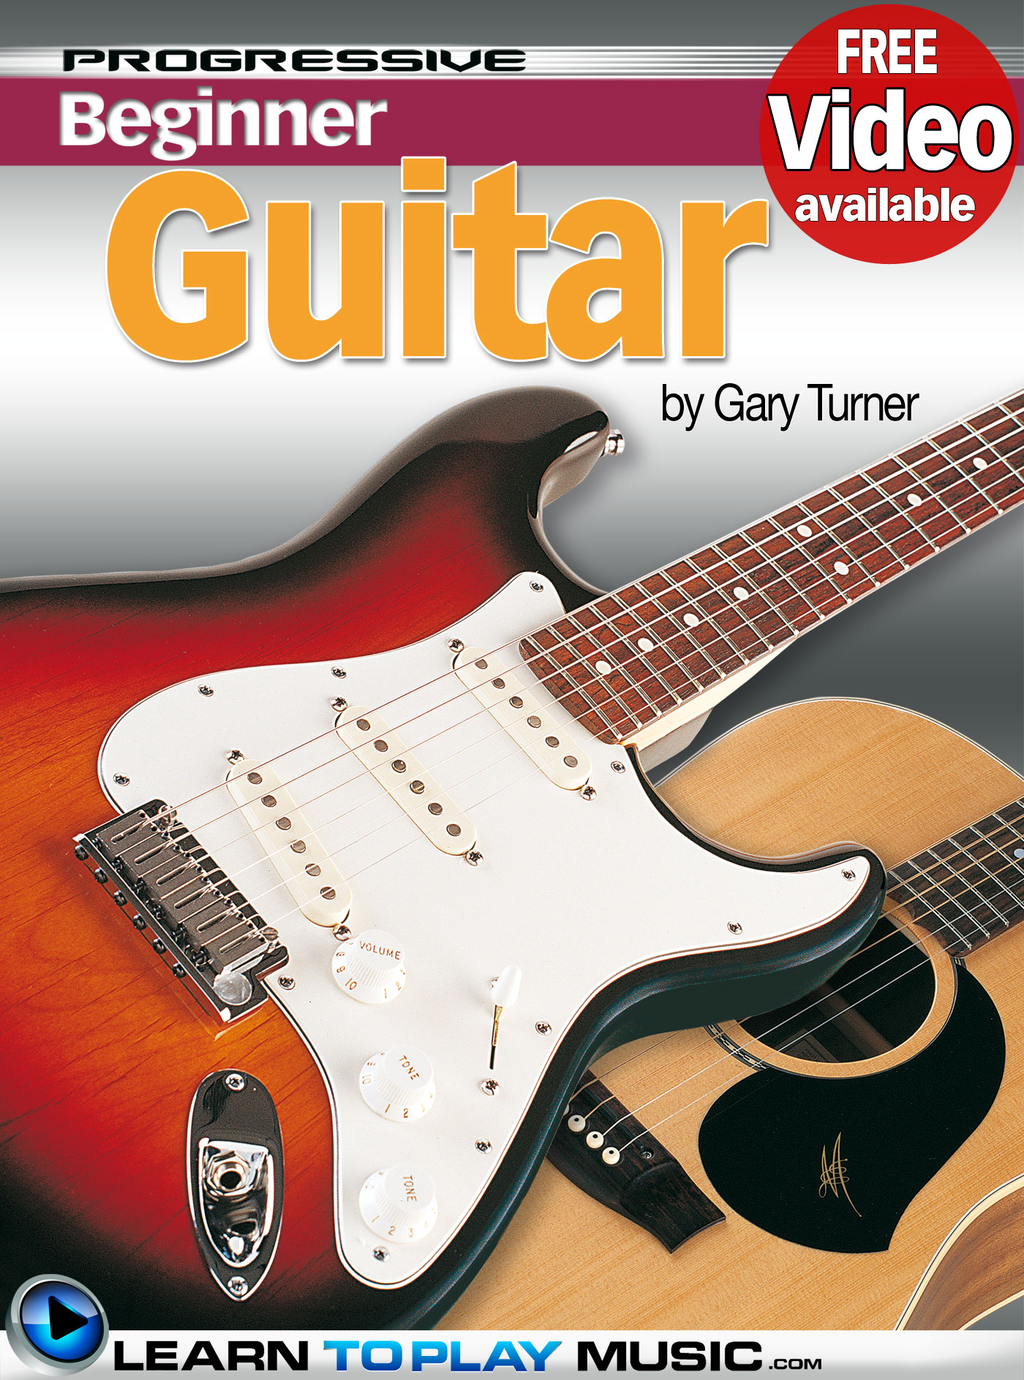 Beginner Guitar Lessons - Progressive By: Gary Turner,LearnToPlayMusic.com